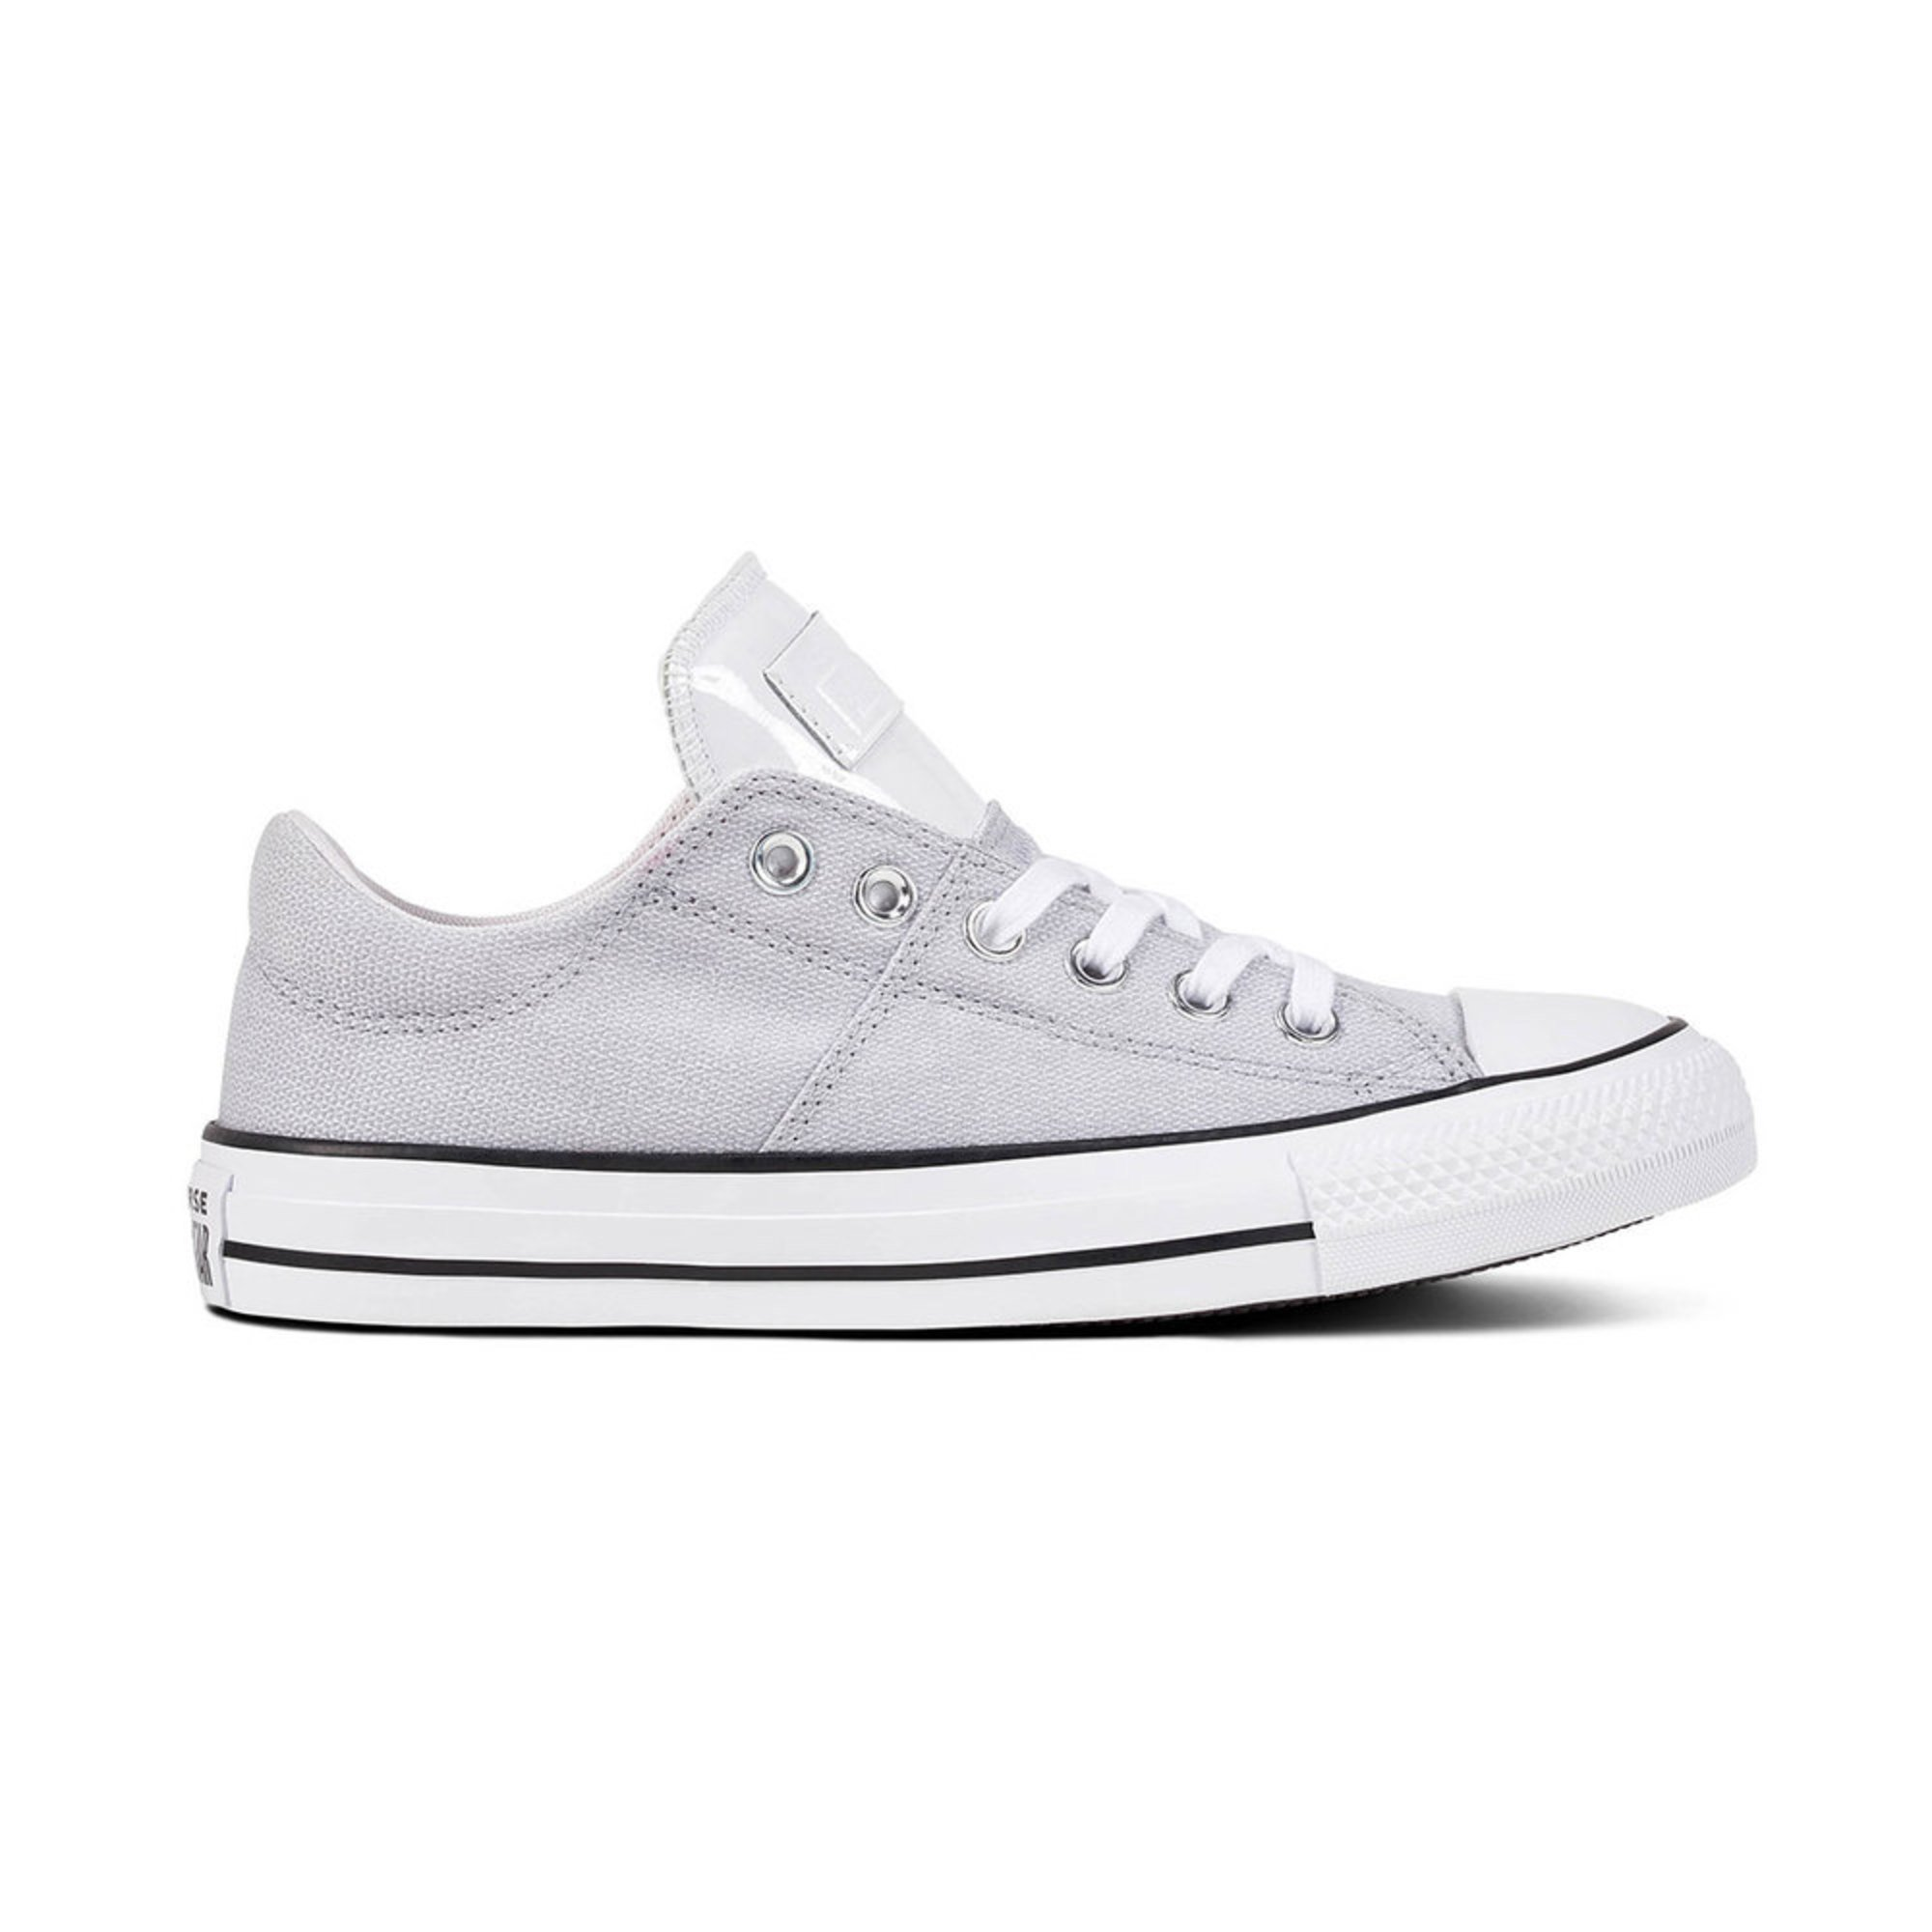 836971de3047 Converse. Converse Women s Chuck Taylor All Star Madison Low Top Sneaker